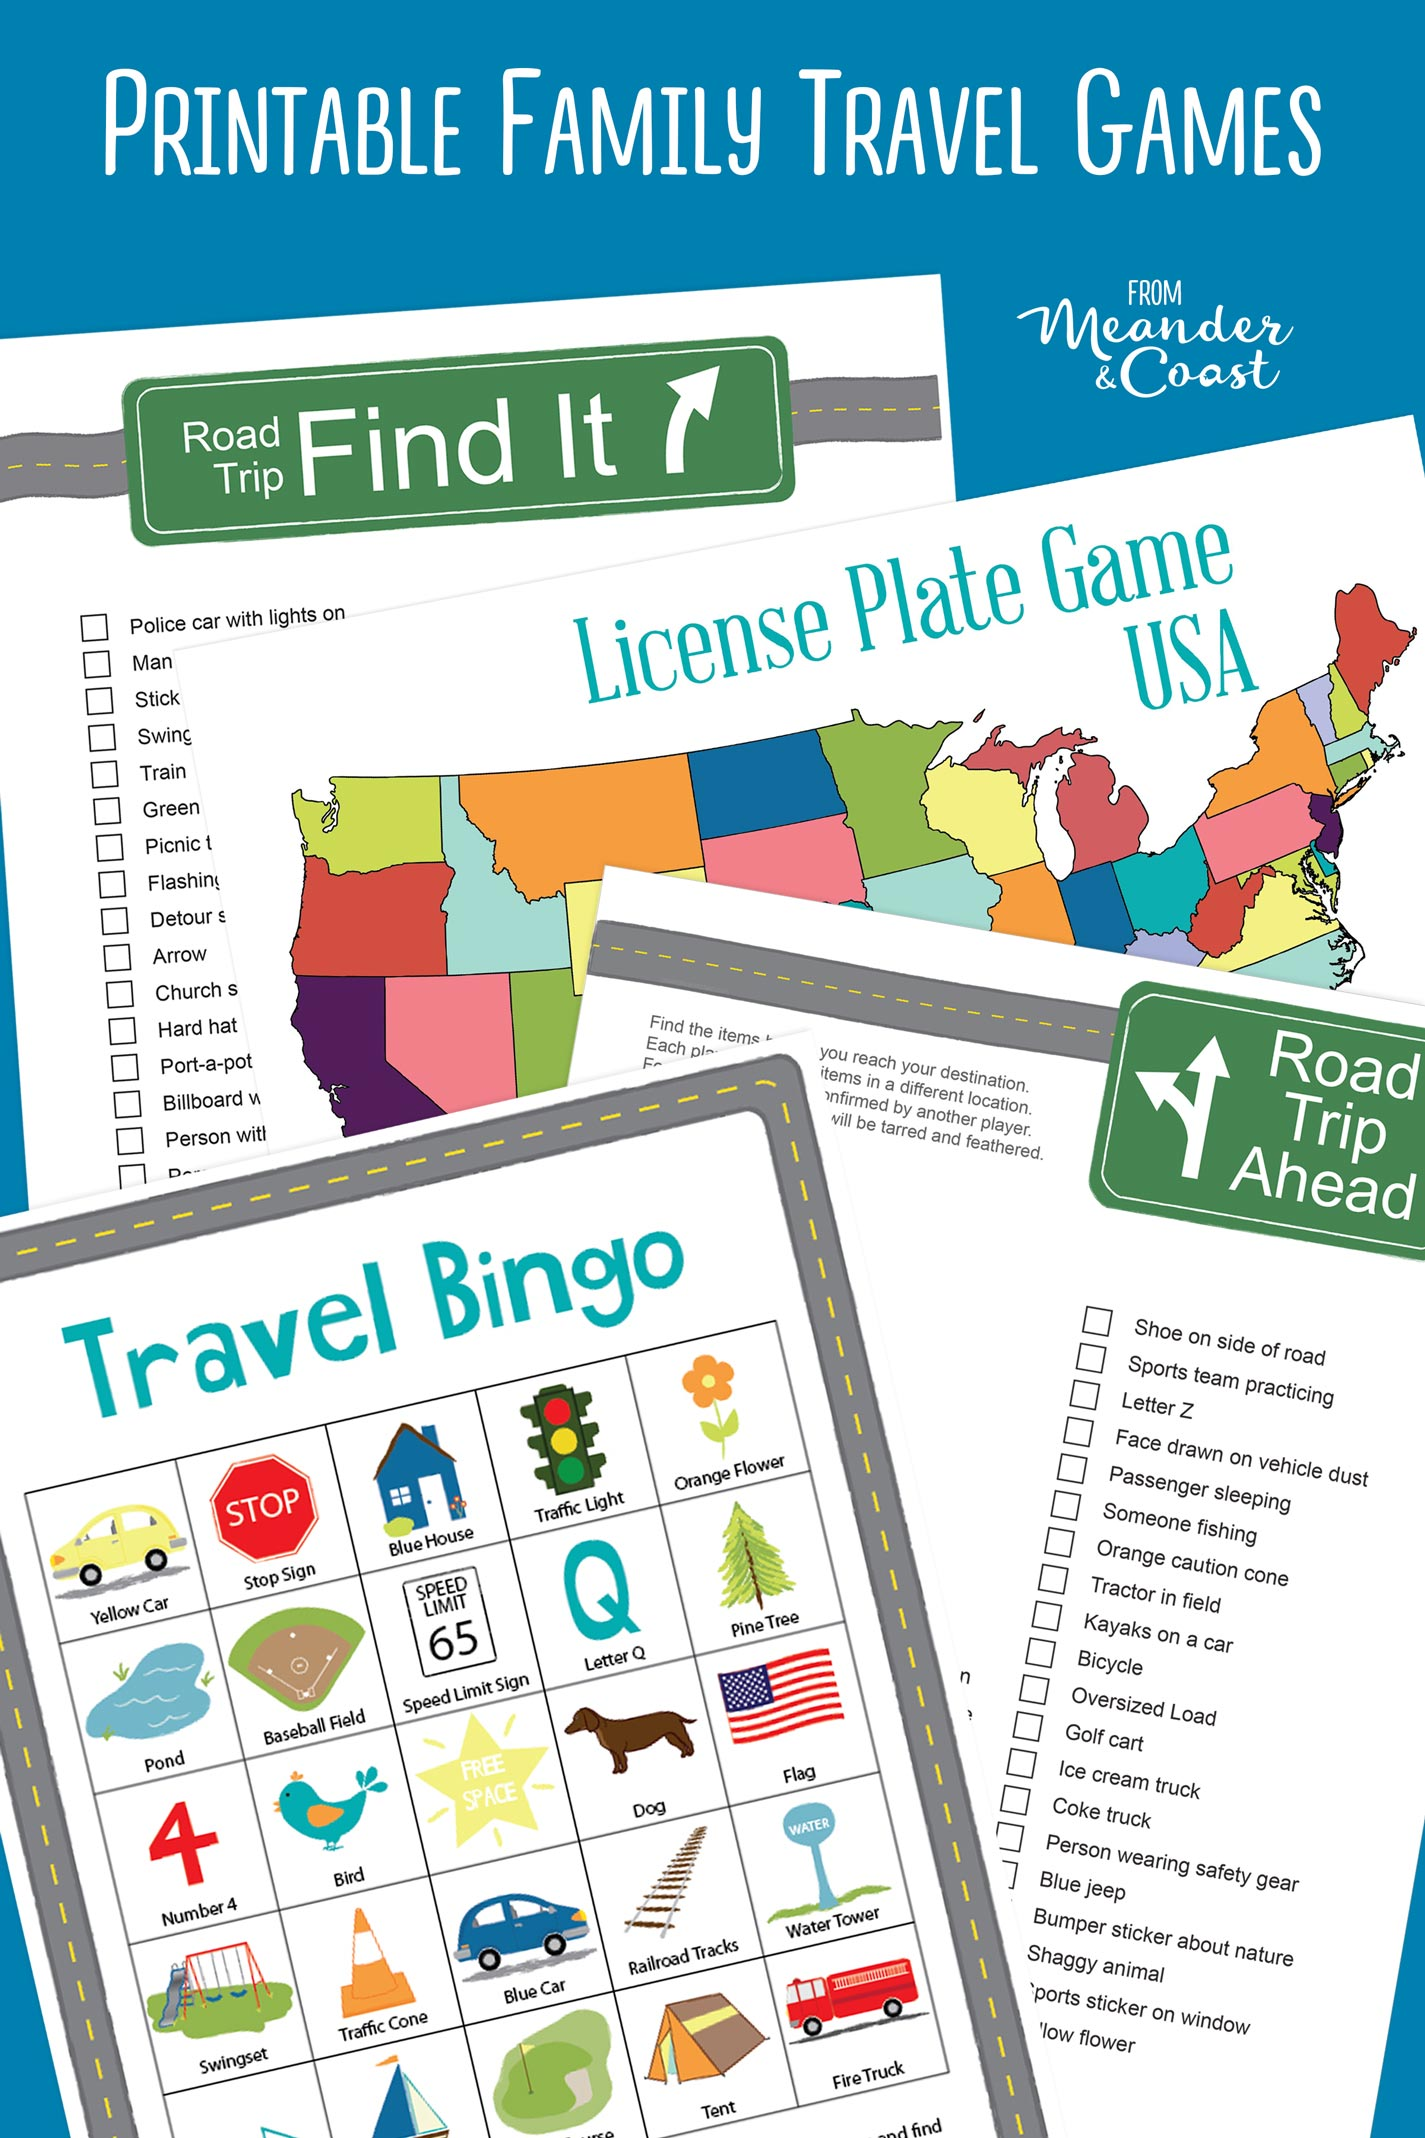 Fantastic ideas for travel games the whole family can play! | Family road trip games for teens, tweens, and kids. The best games for long car rides from Meander & Coast.